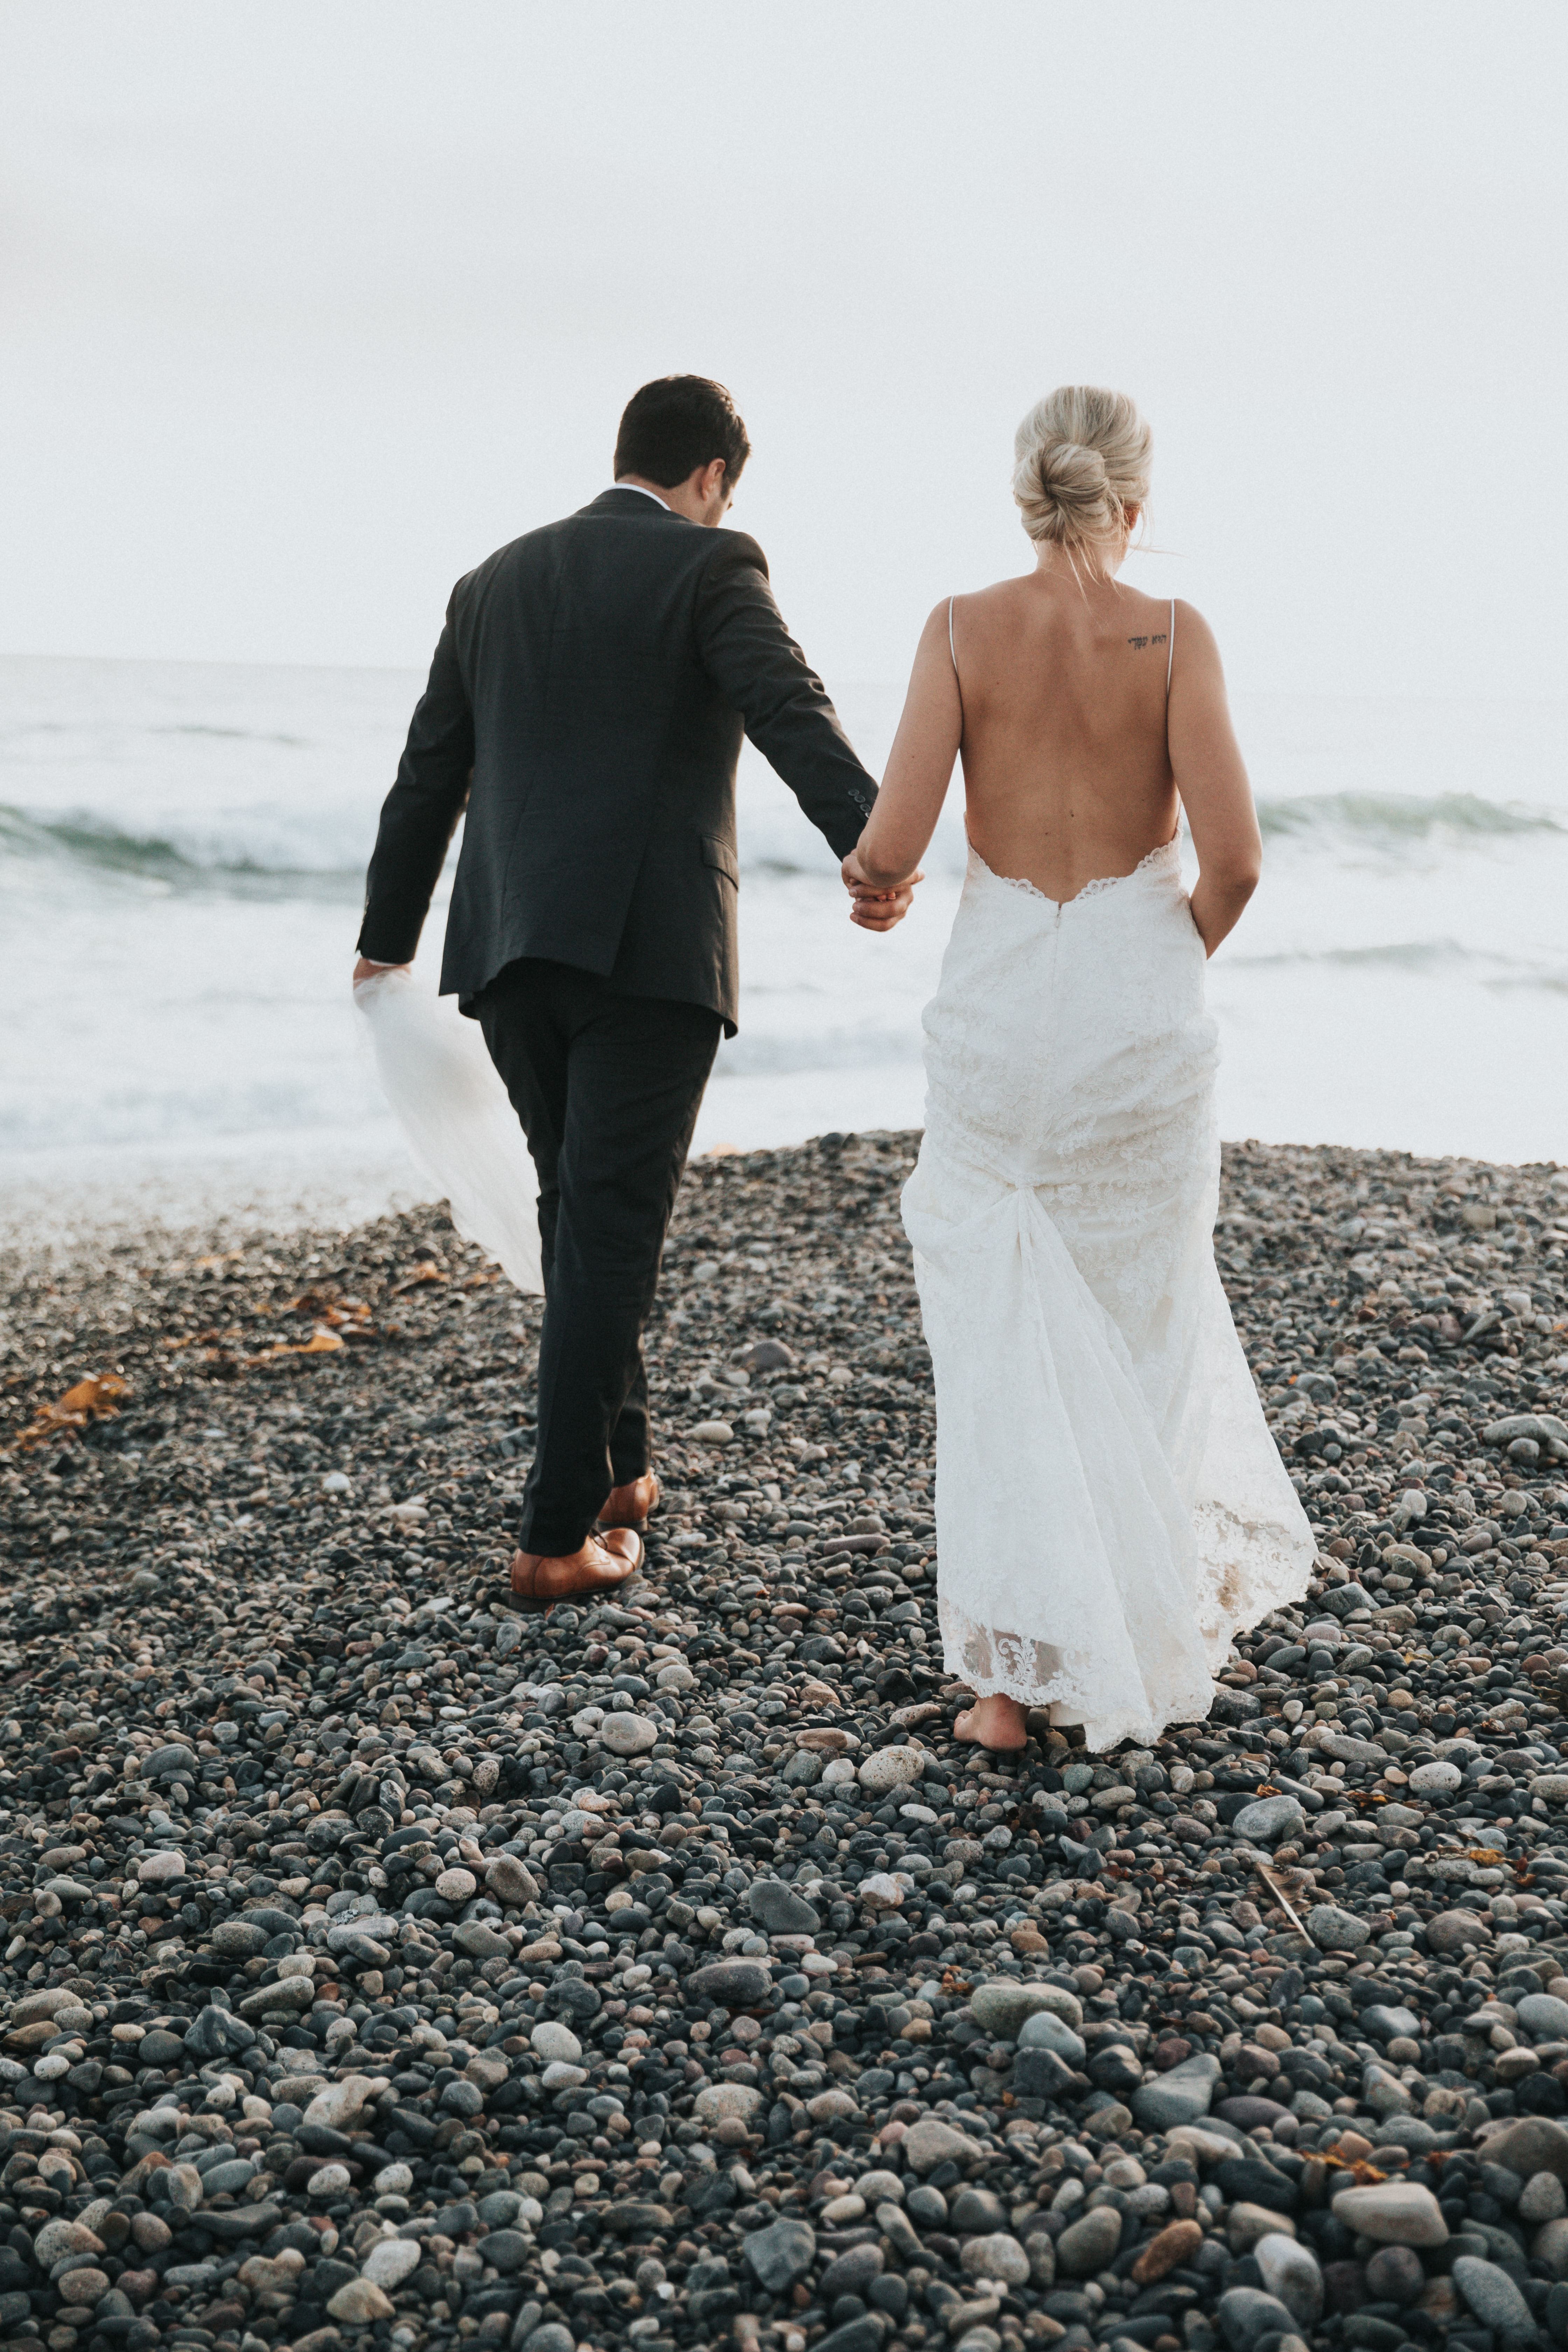 groom and bride walking on stone near body of water